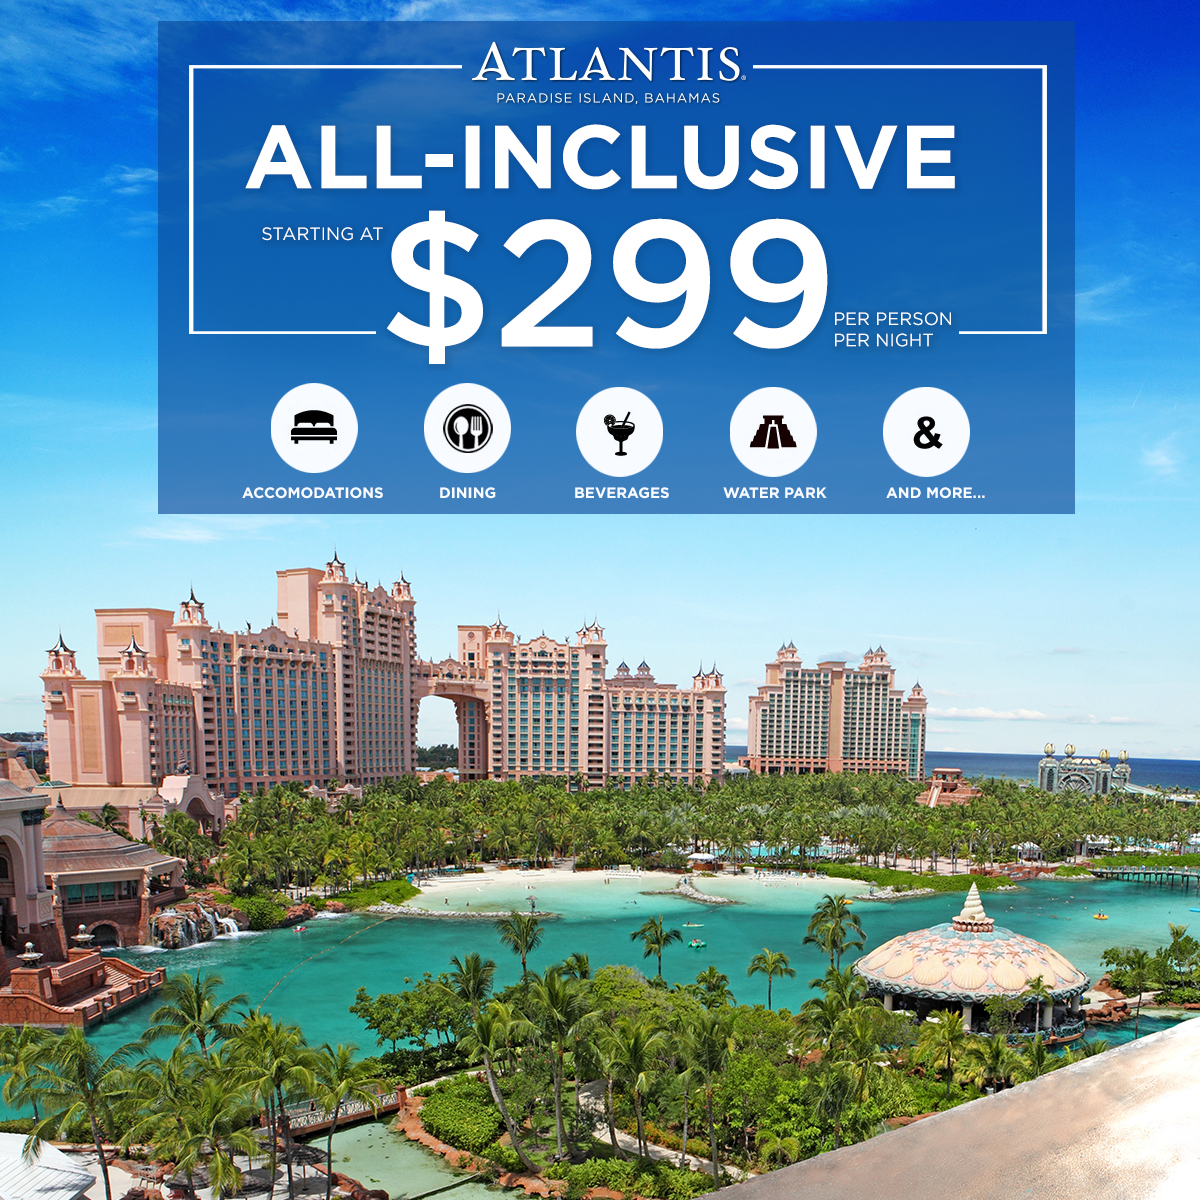 Atlantis All-Inclusive Experience For Travel Now Through